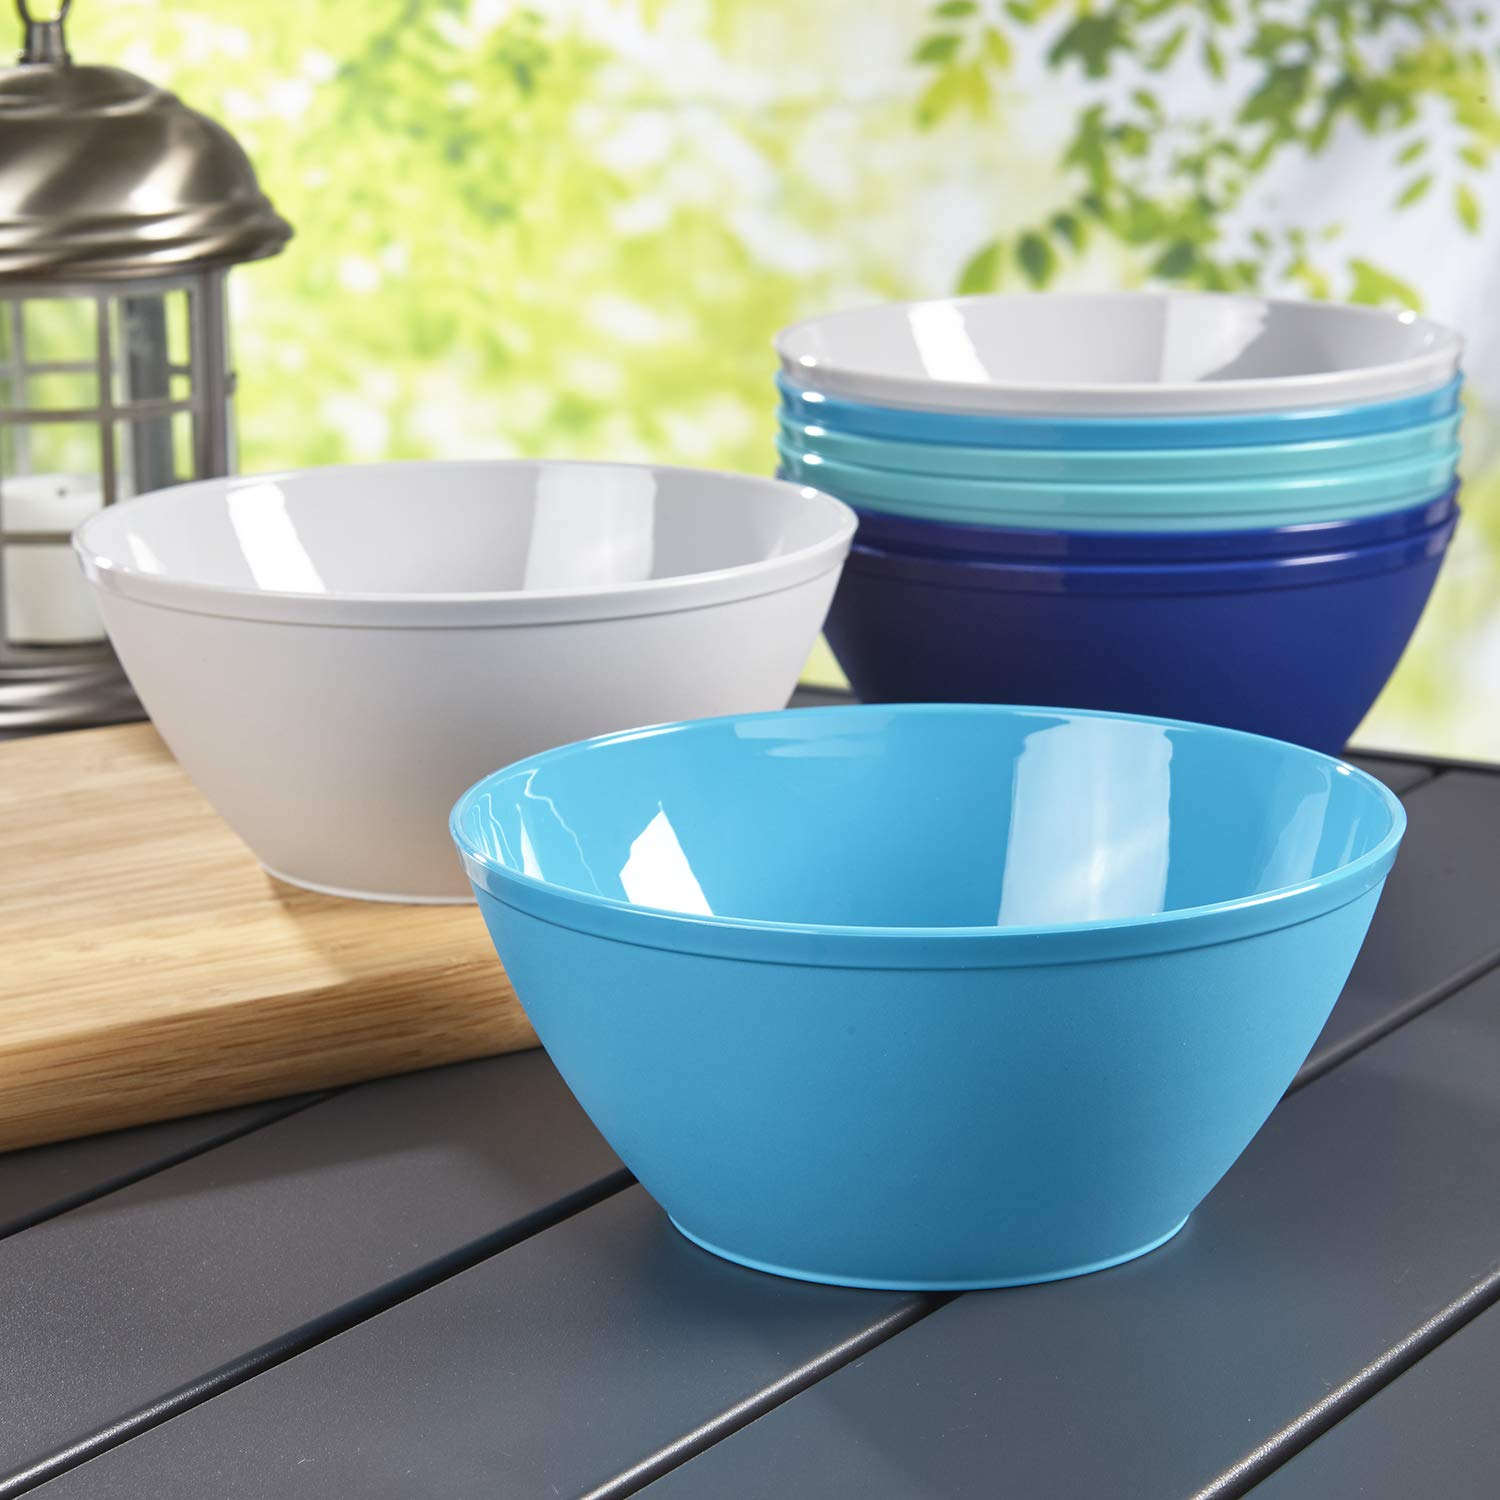 Fresco 6-inch Plastic Bowls for Cereal or Salad | set of 8 in 4 Coastal Colors by US Acrylic (Image #2)